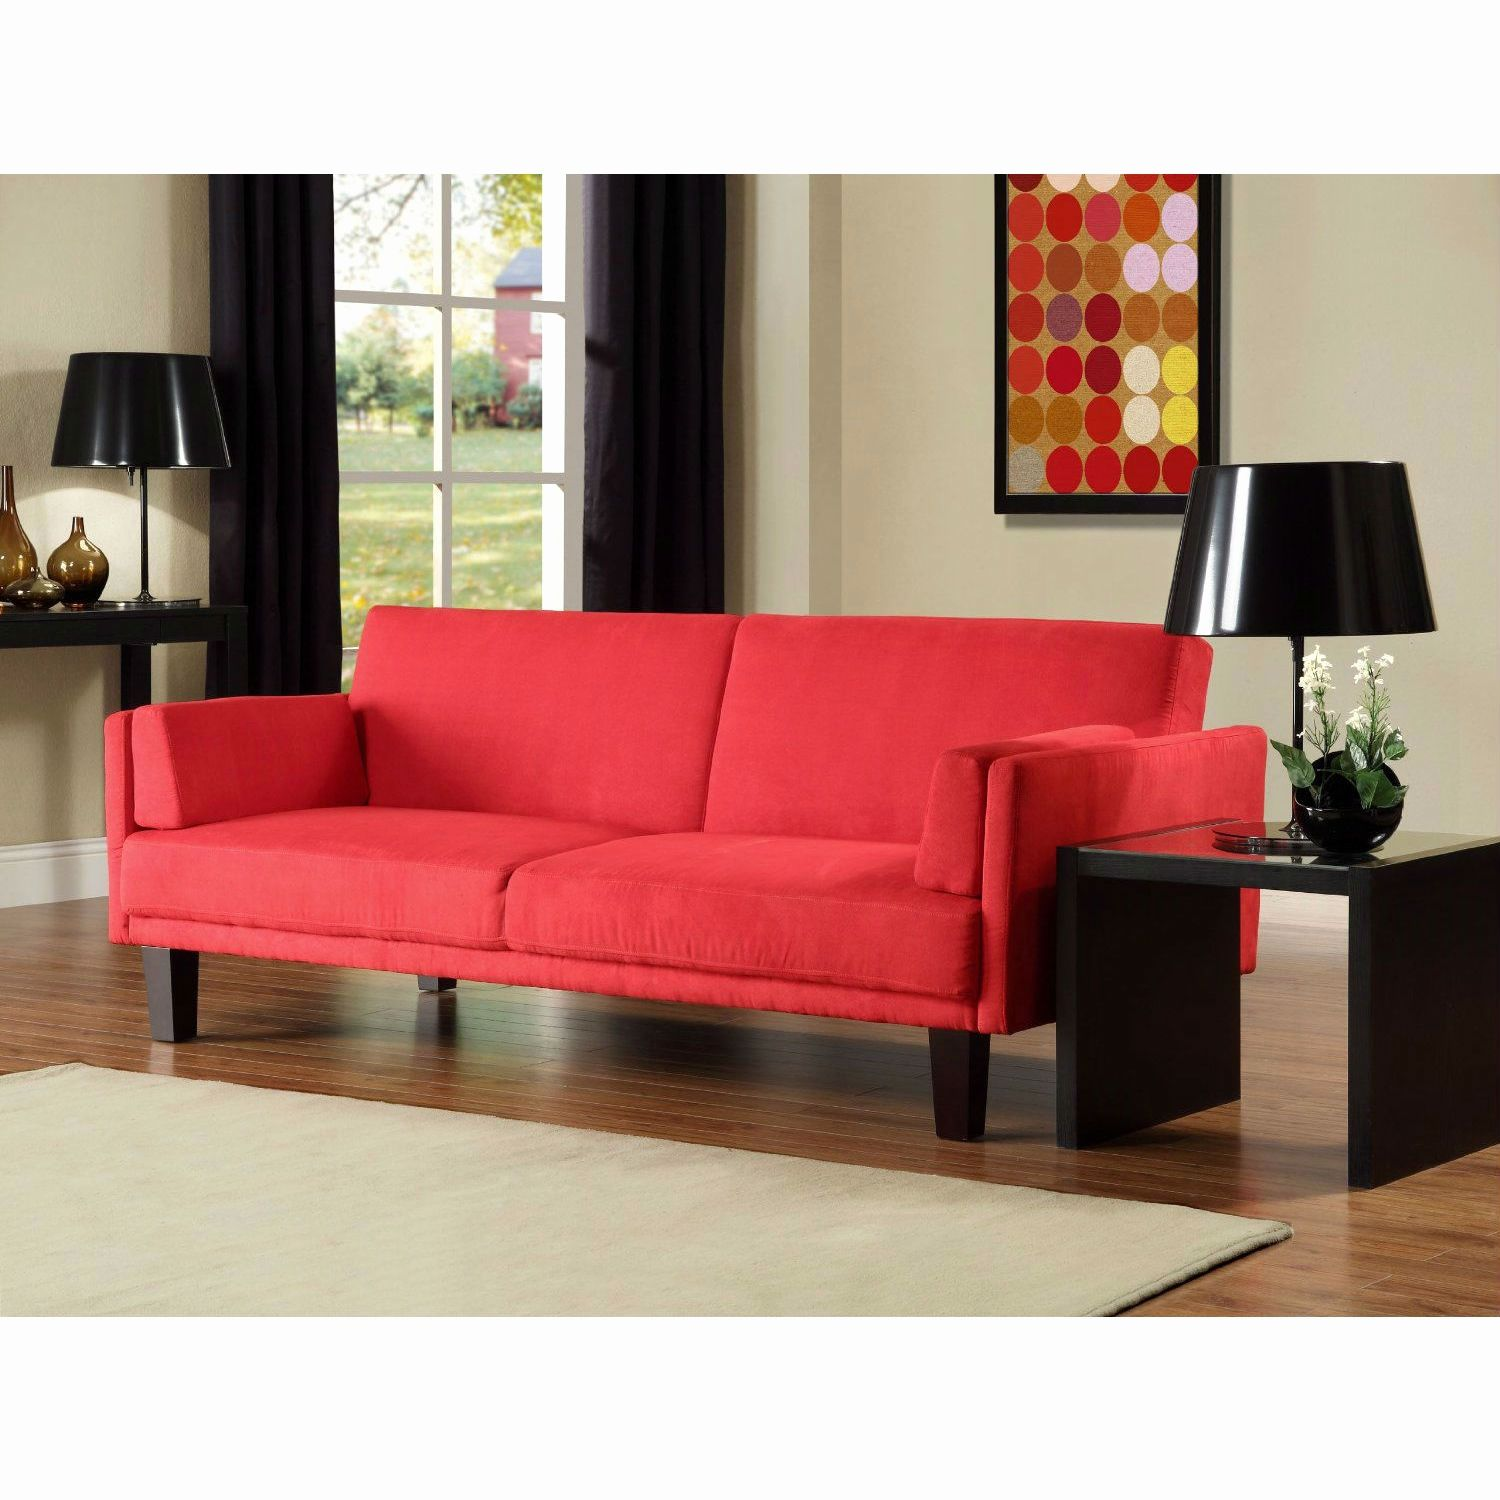 Awesome mid century modern convertible sofa pics contemporary mid